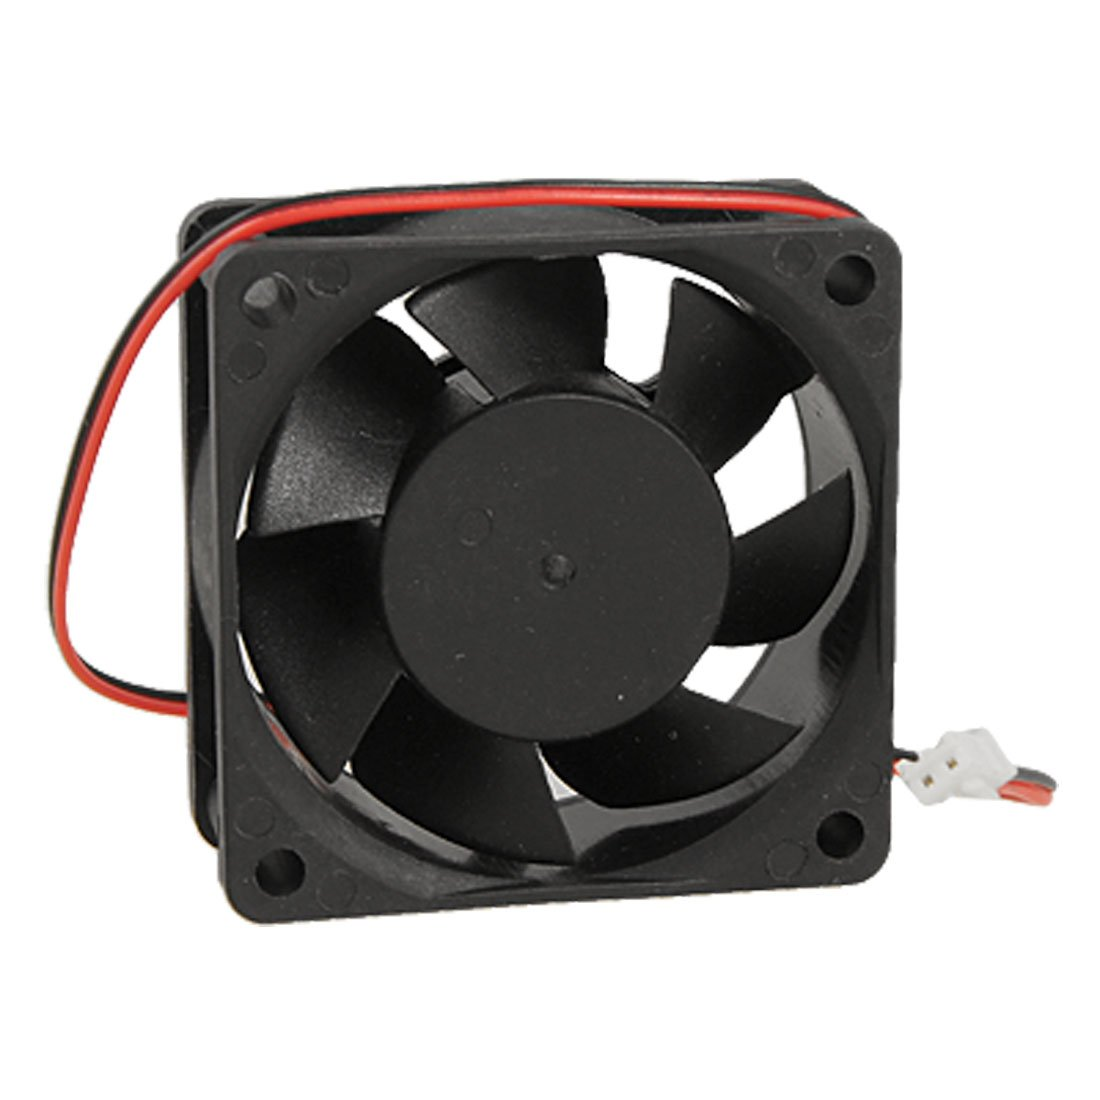 PROMOTION! Hot 60mm x 25mm DC 12V 0.25A 2Pin Cooling Fan For Computer CPU Cooler promotion 92mm x 25mm dc 12v 2pin 65 01cfm computer case cpu cooler cooling fan